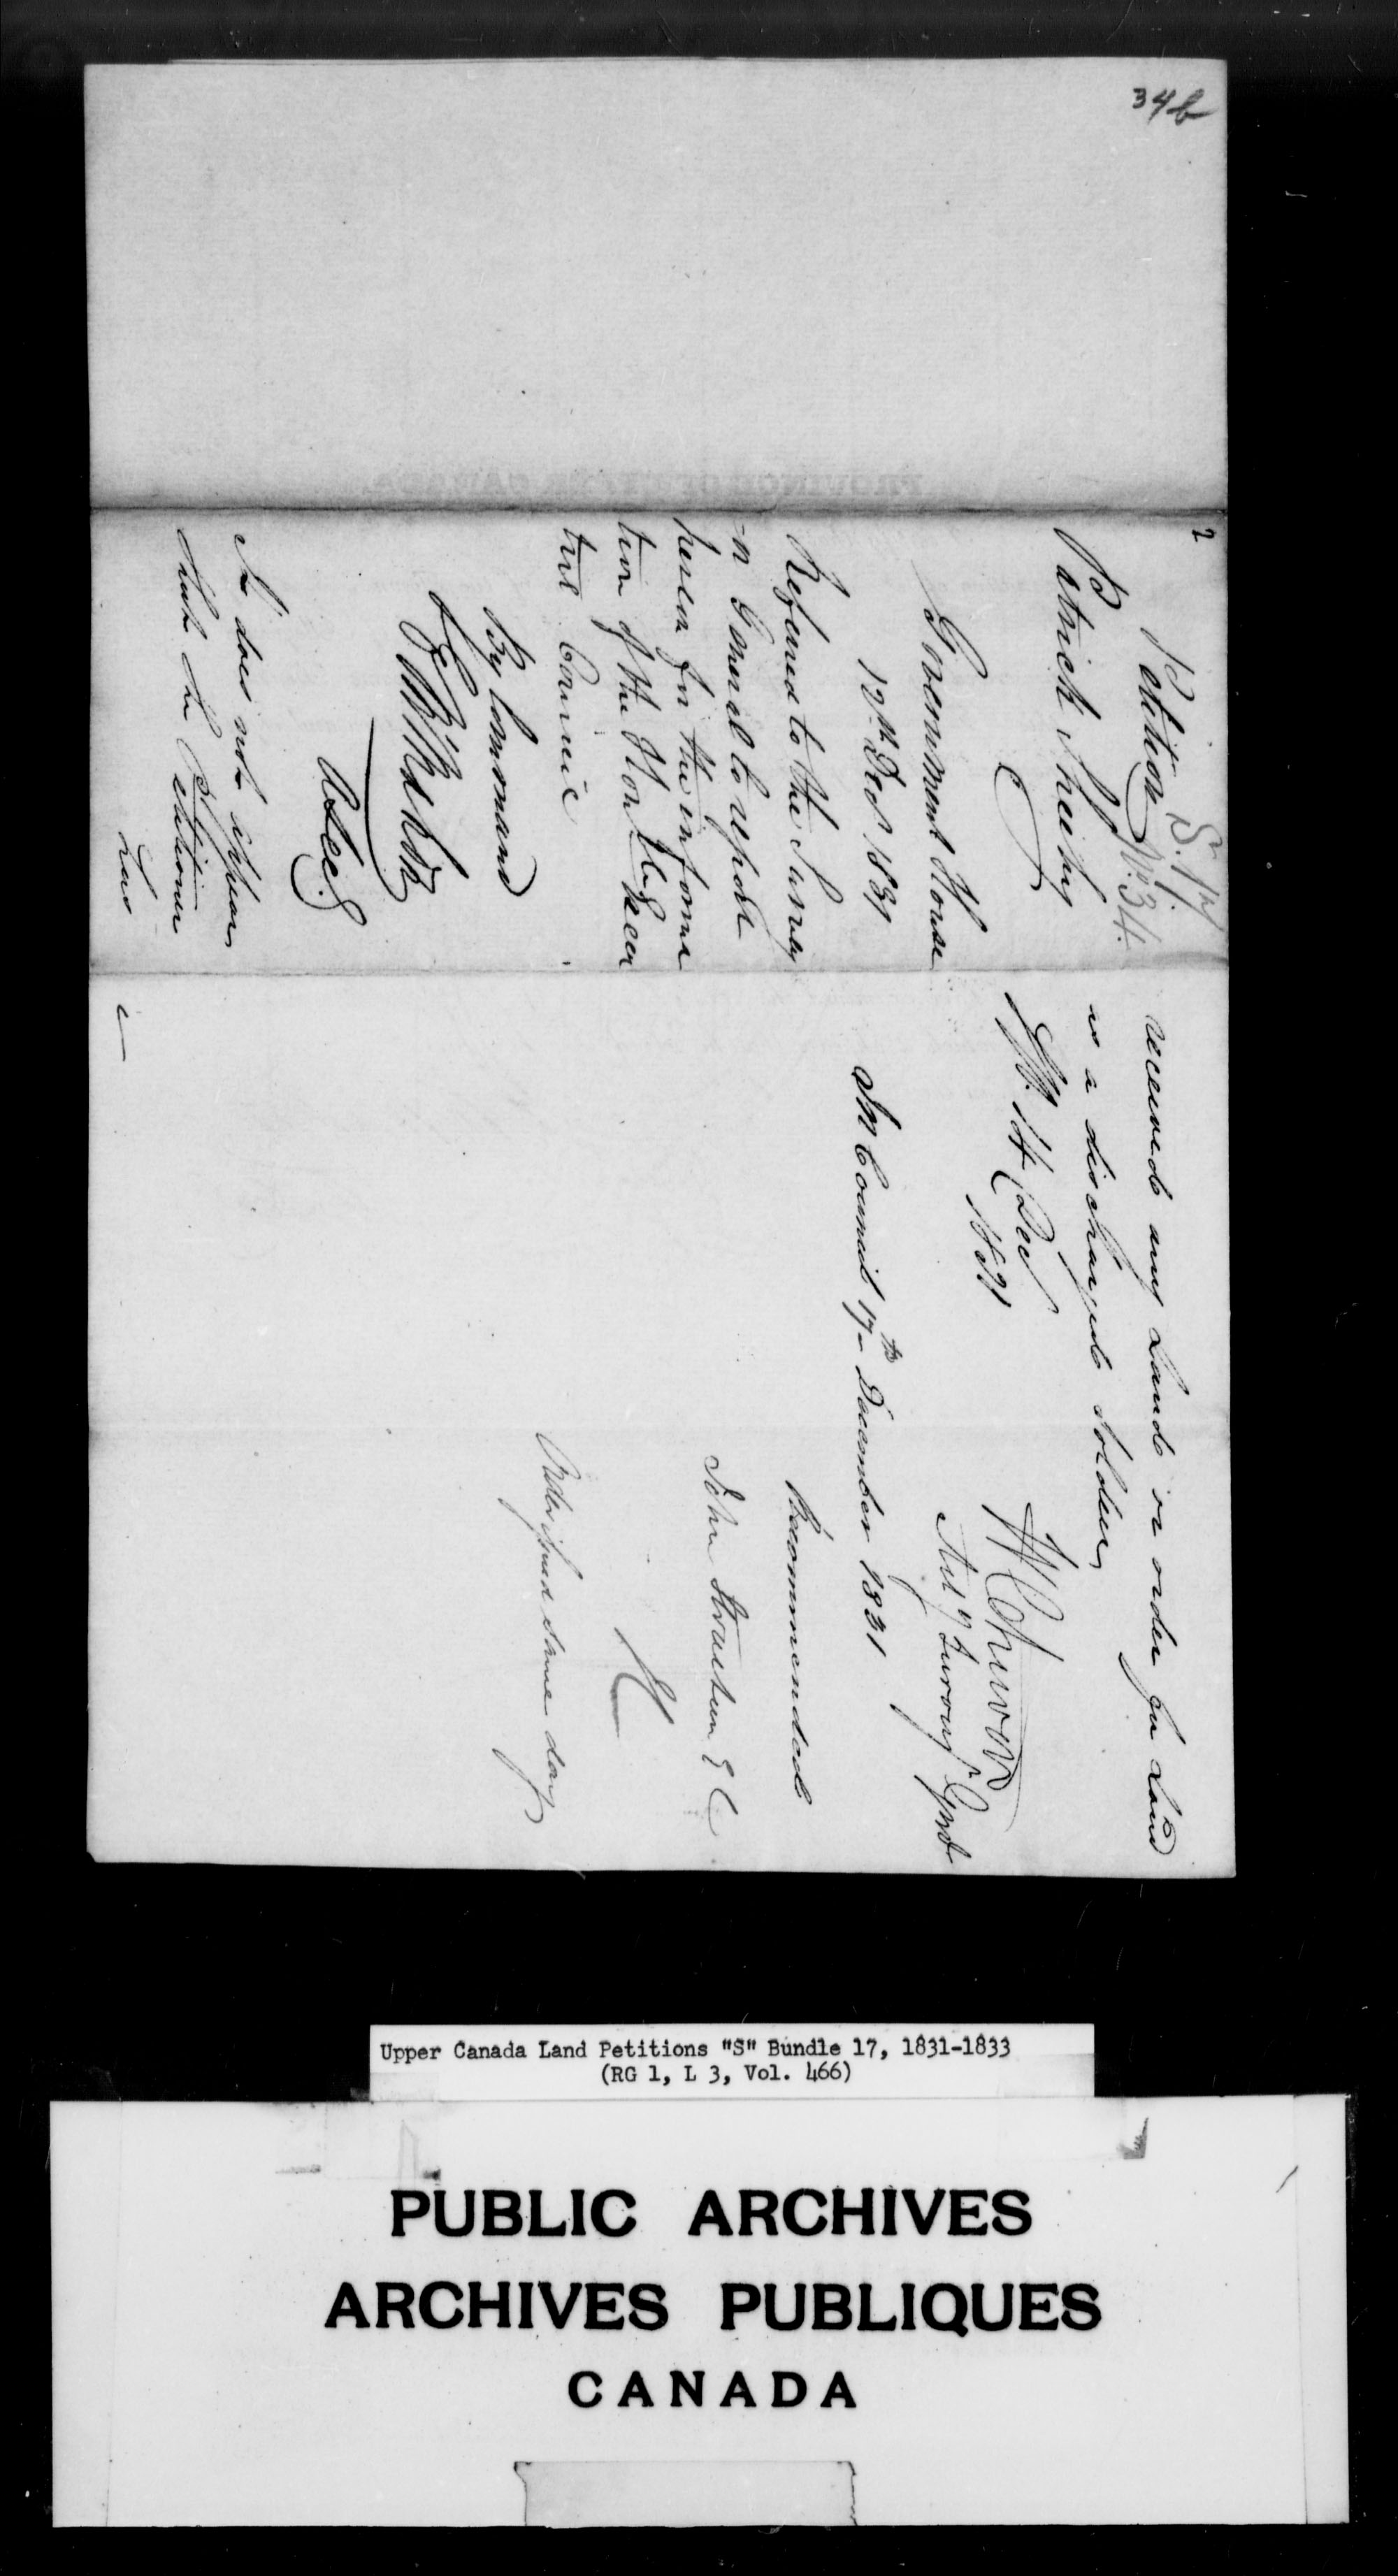 Title: Upper Canada Land Petitions (1763-1865) - Mikan Number: 205131 - Microform: c-2816